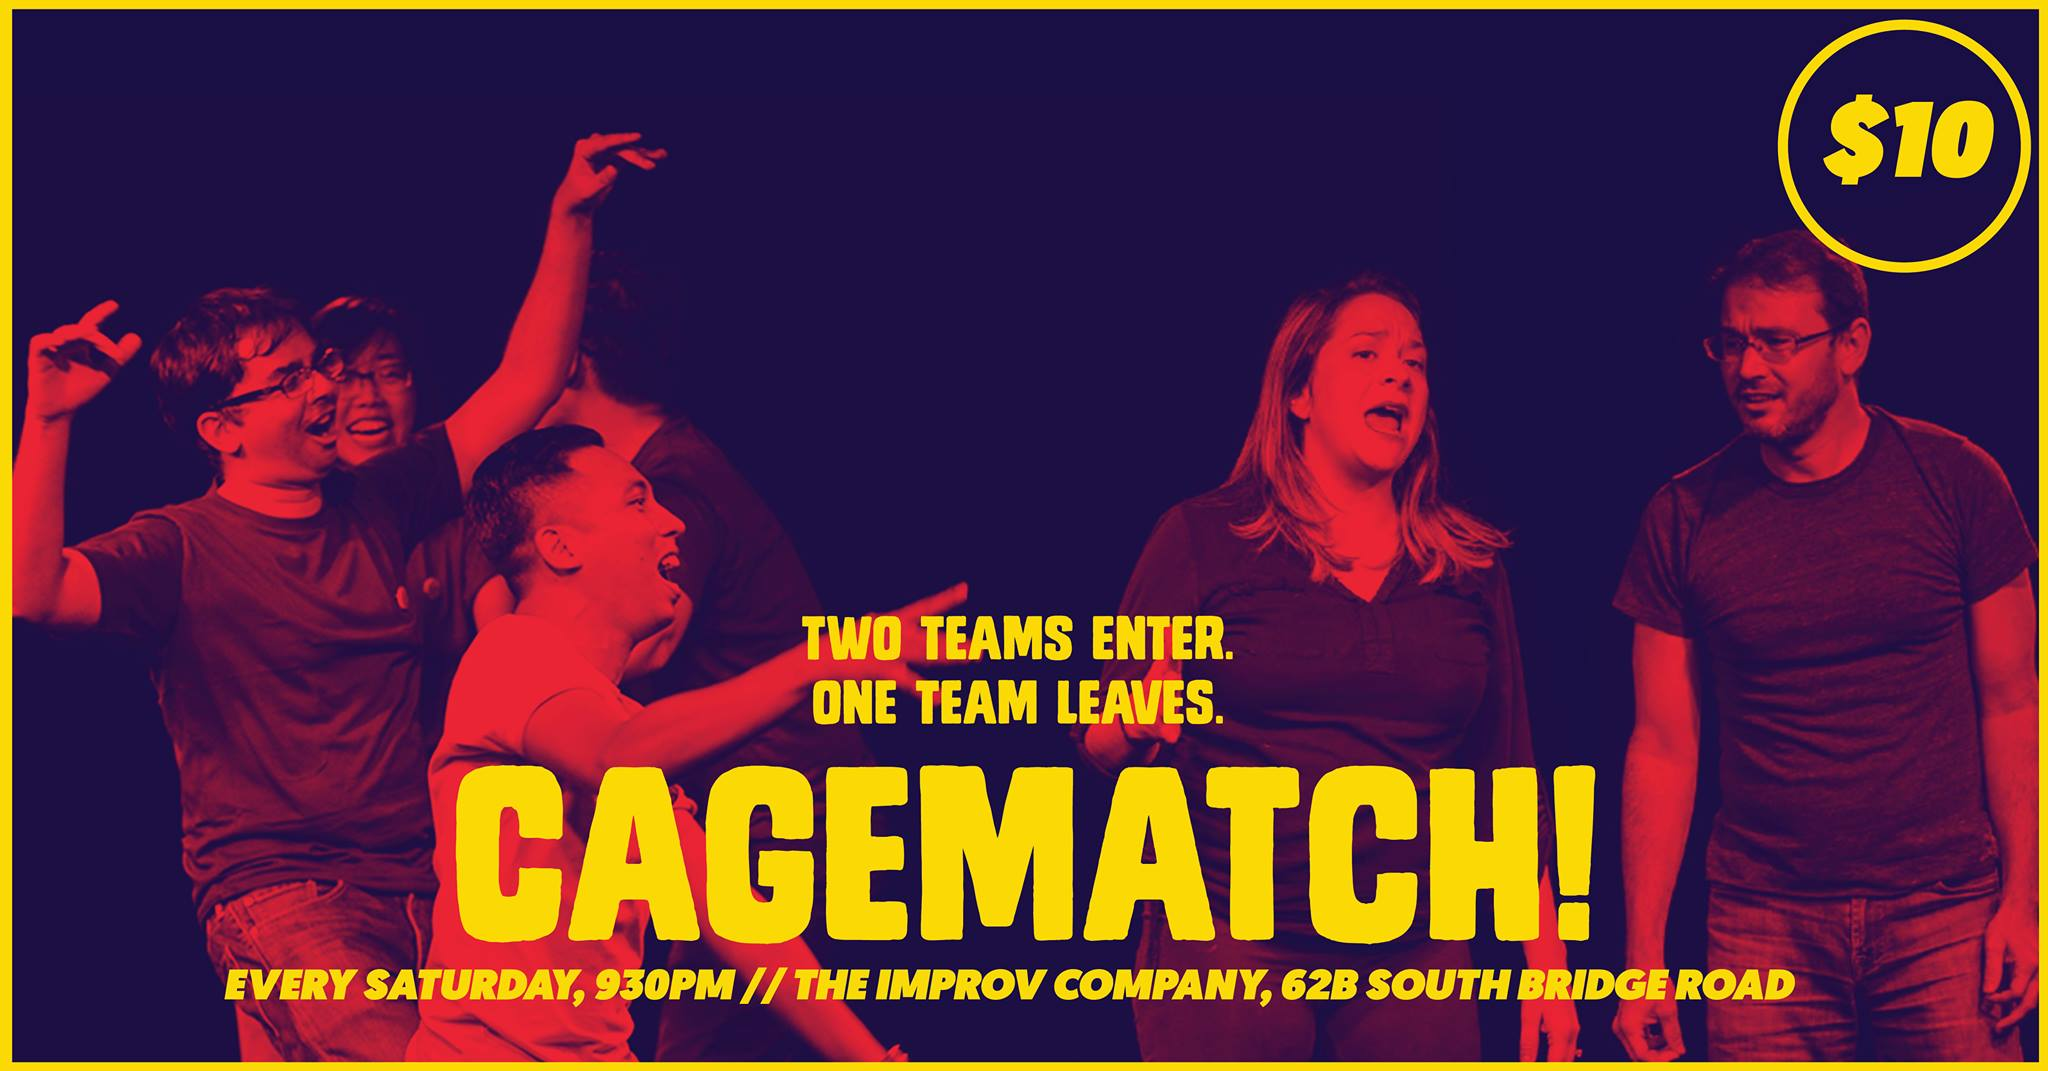 Singapore Improv Cagematch